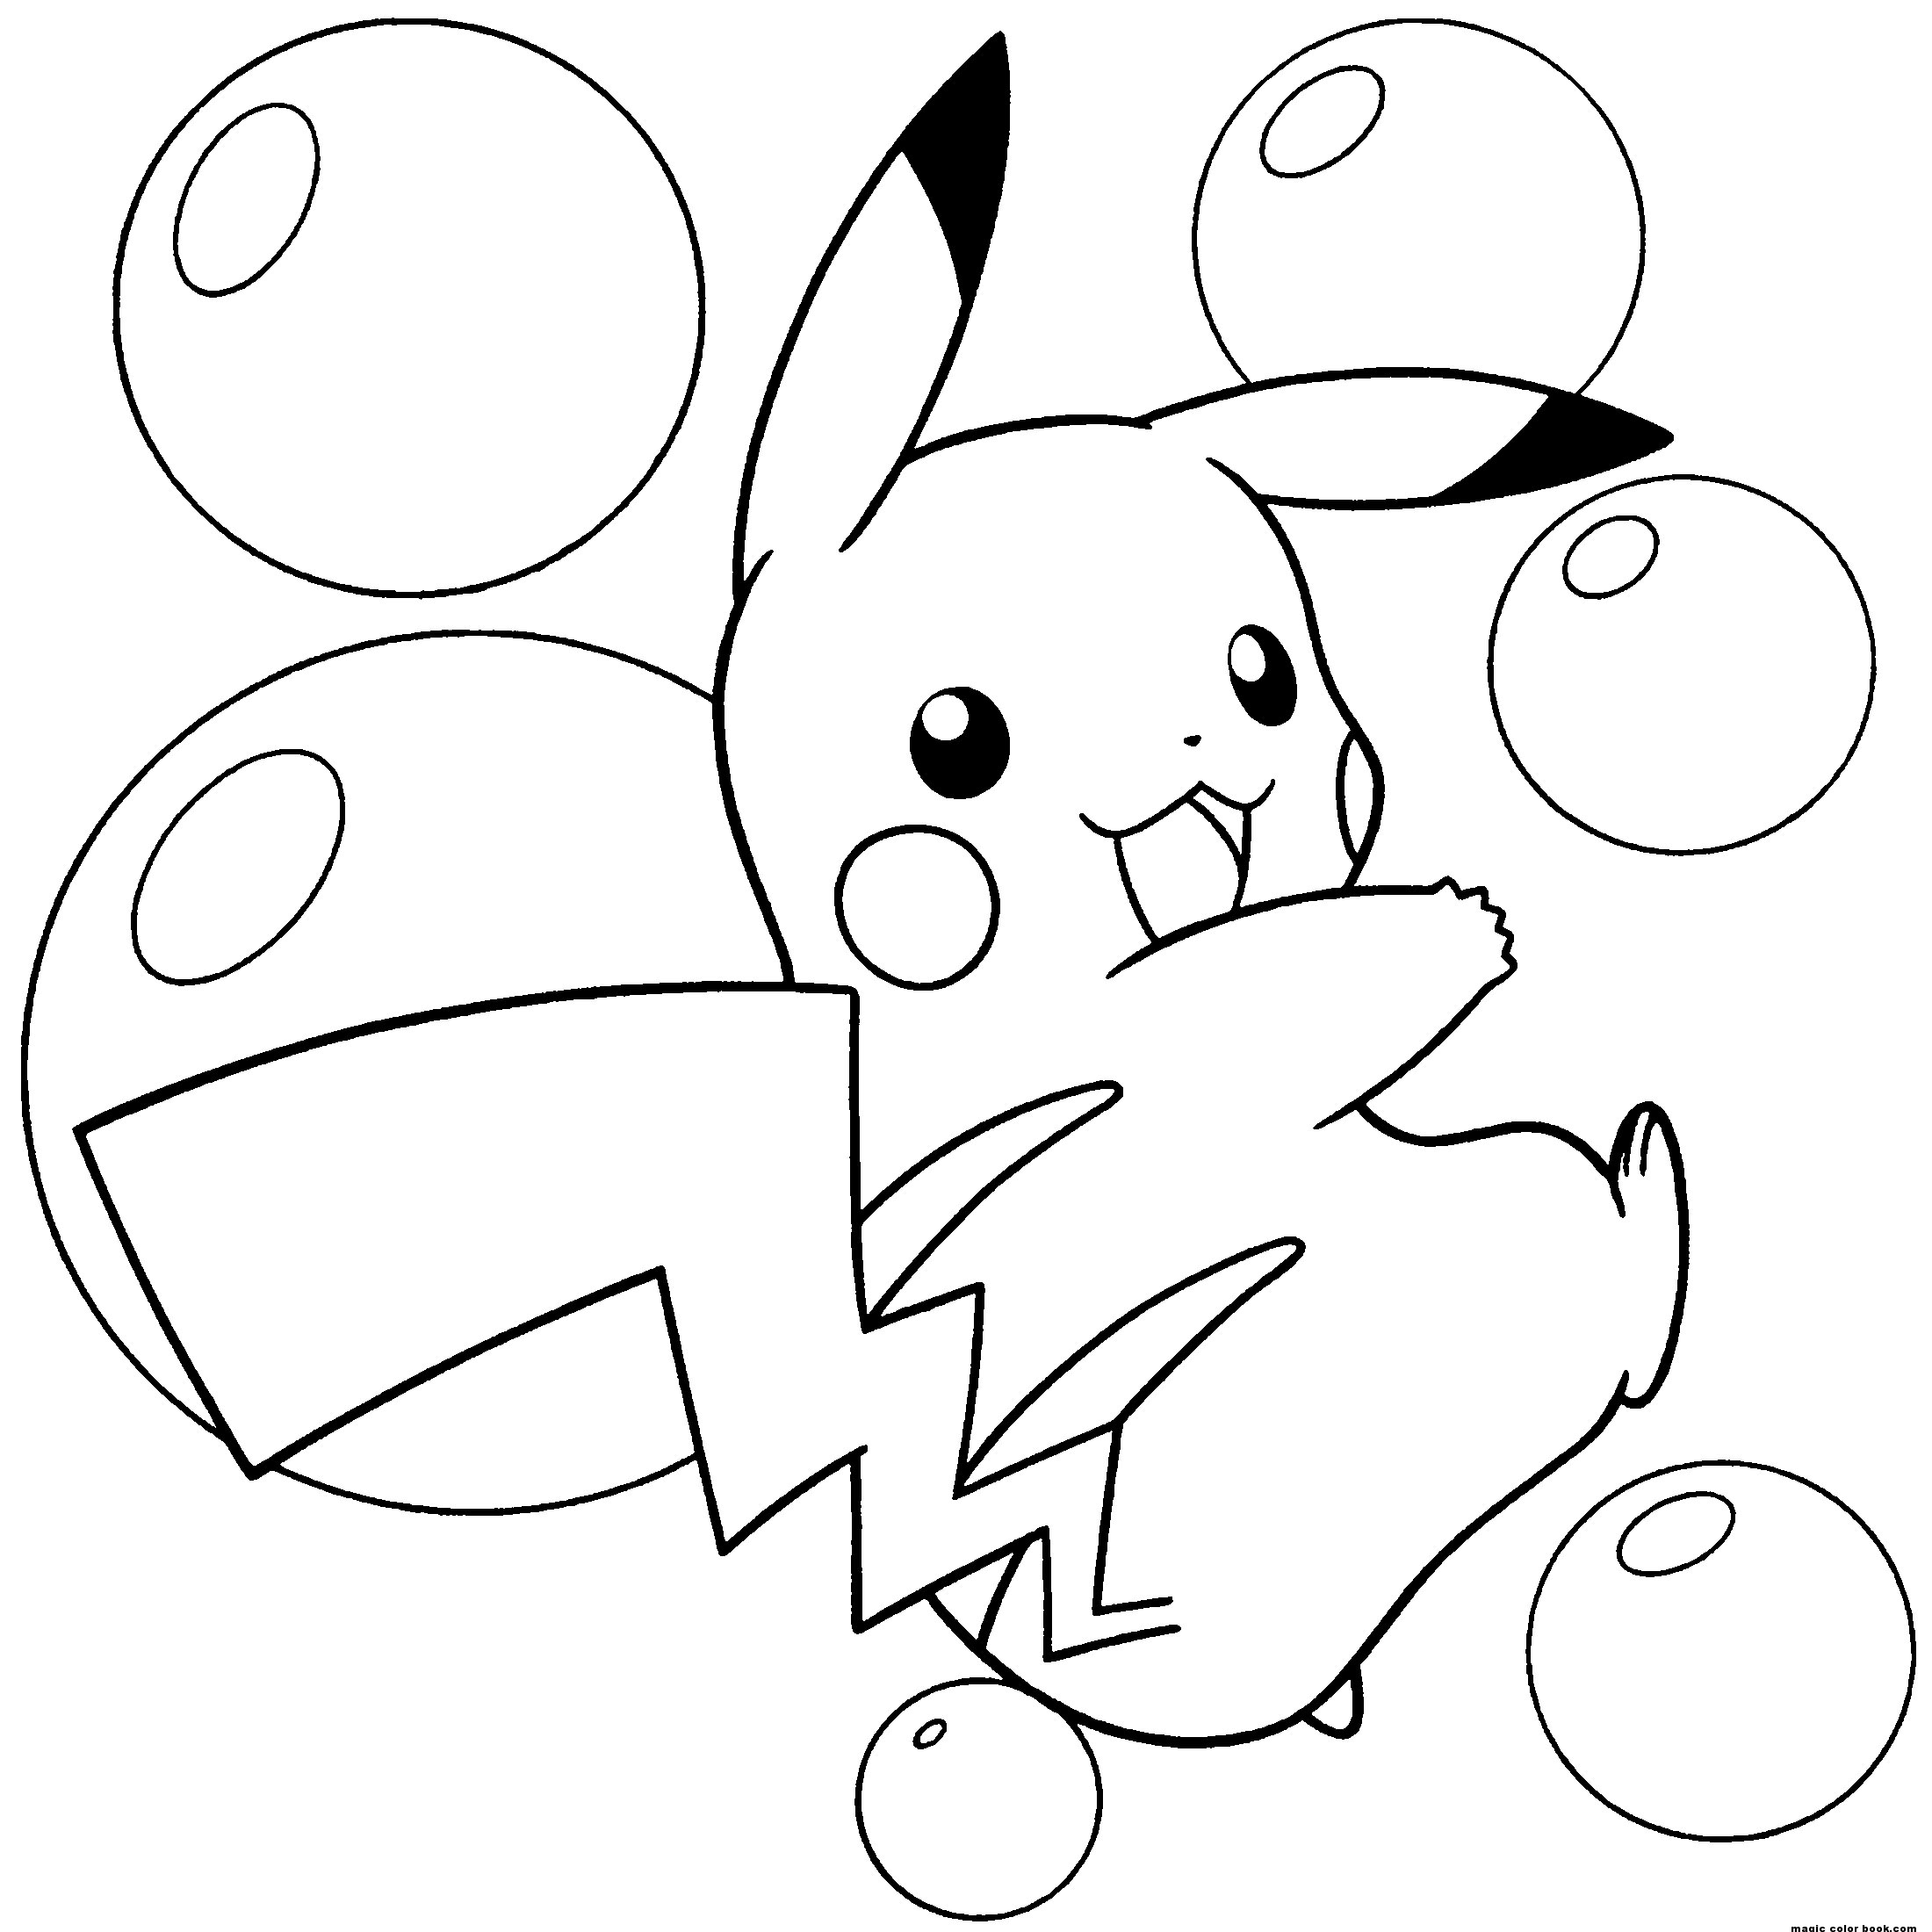 Pokemon coloring pages eevee evolutions glaceon - Pokemon Coloring Pages Pikachu